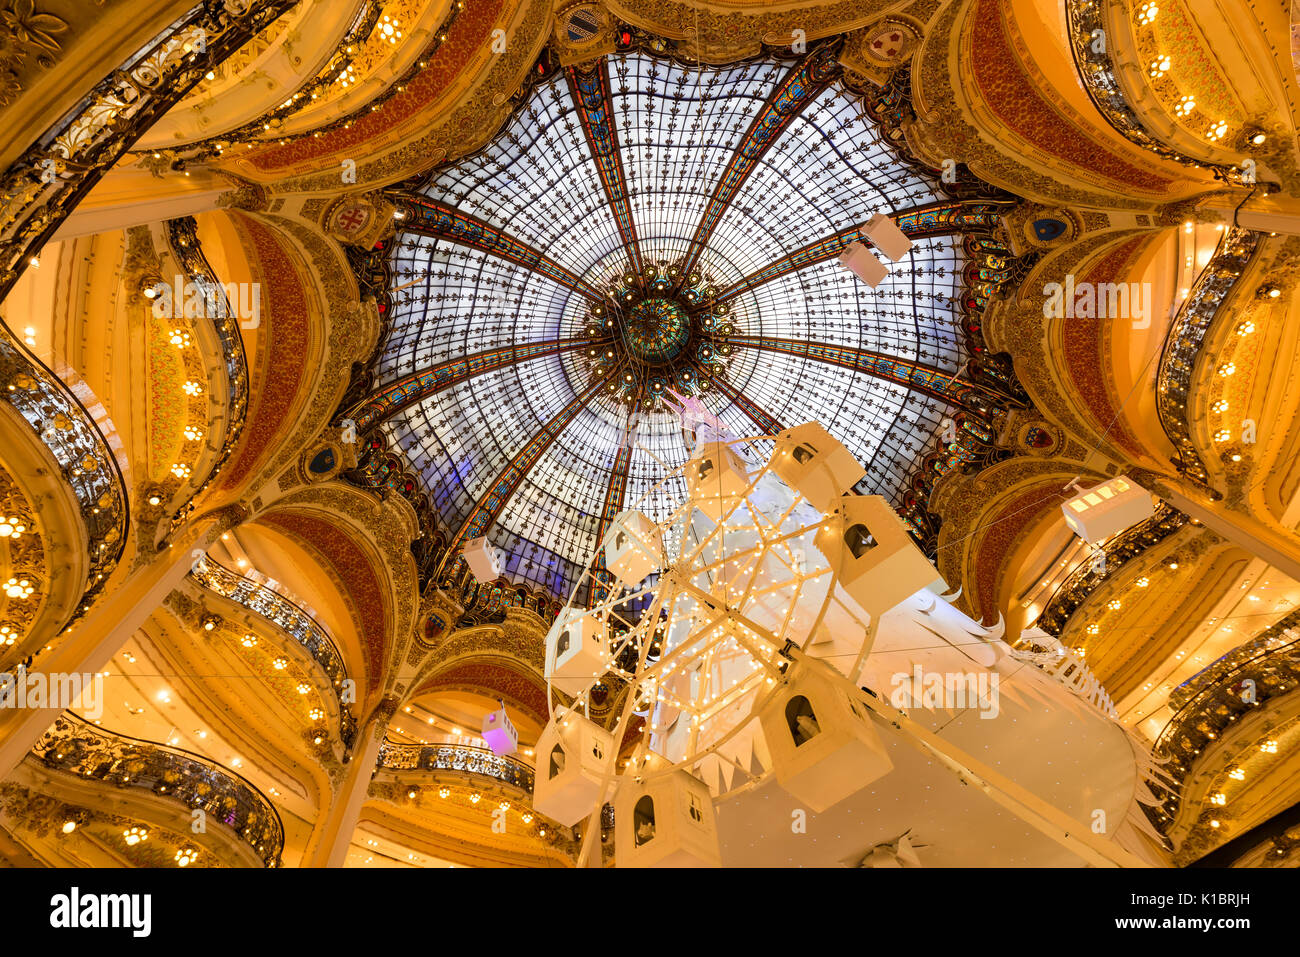 Galleries Lafayette Haussman interior with glass cupola at Christmas. Paris, France - Stock Image